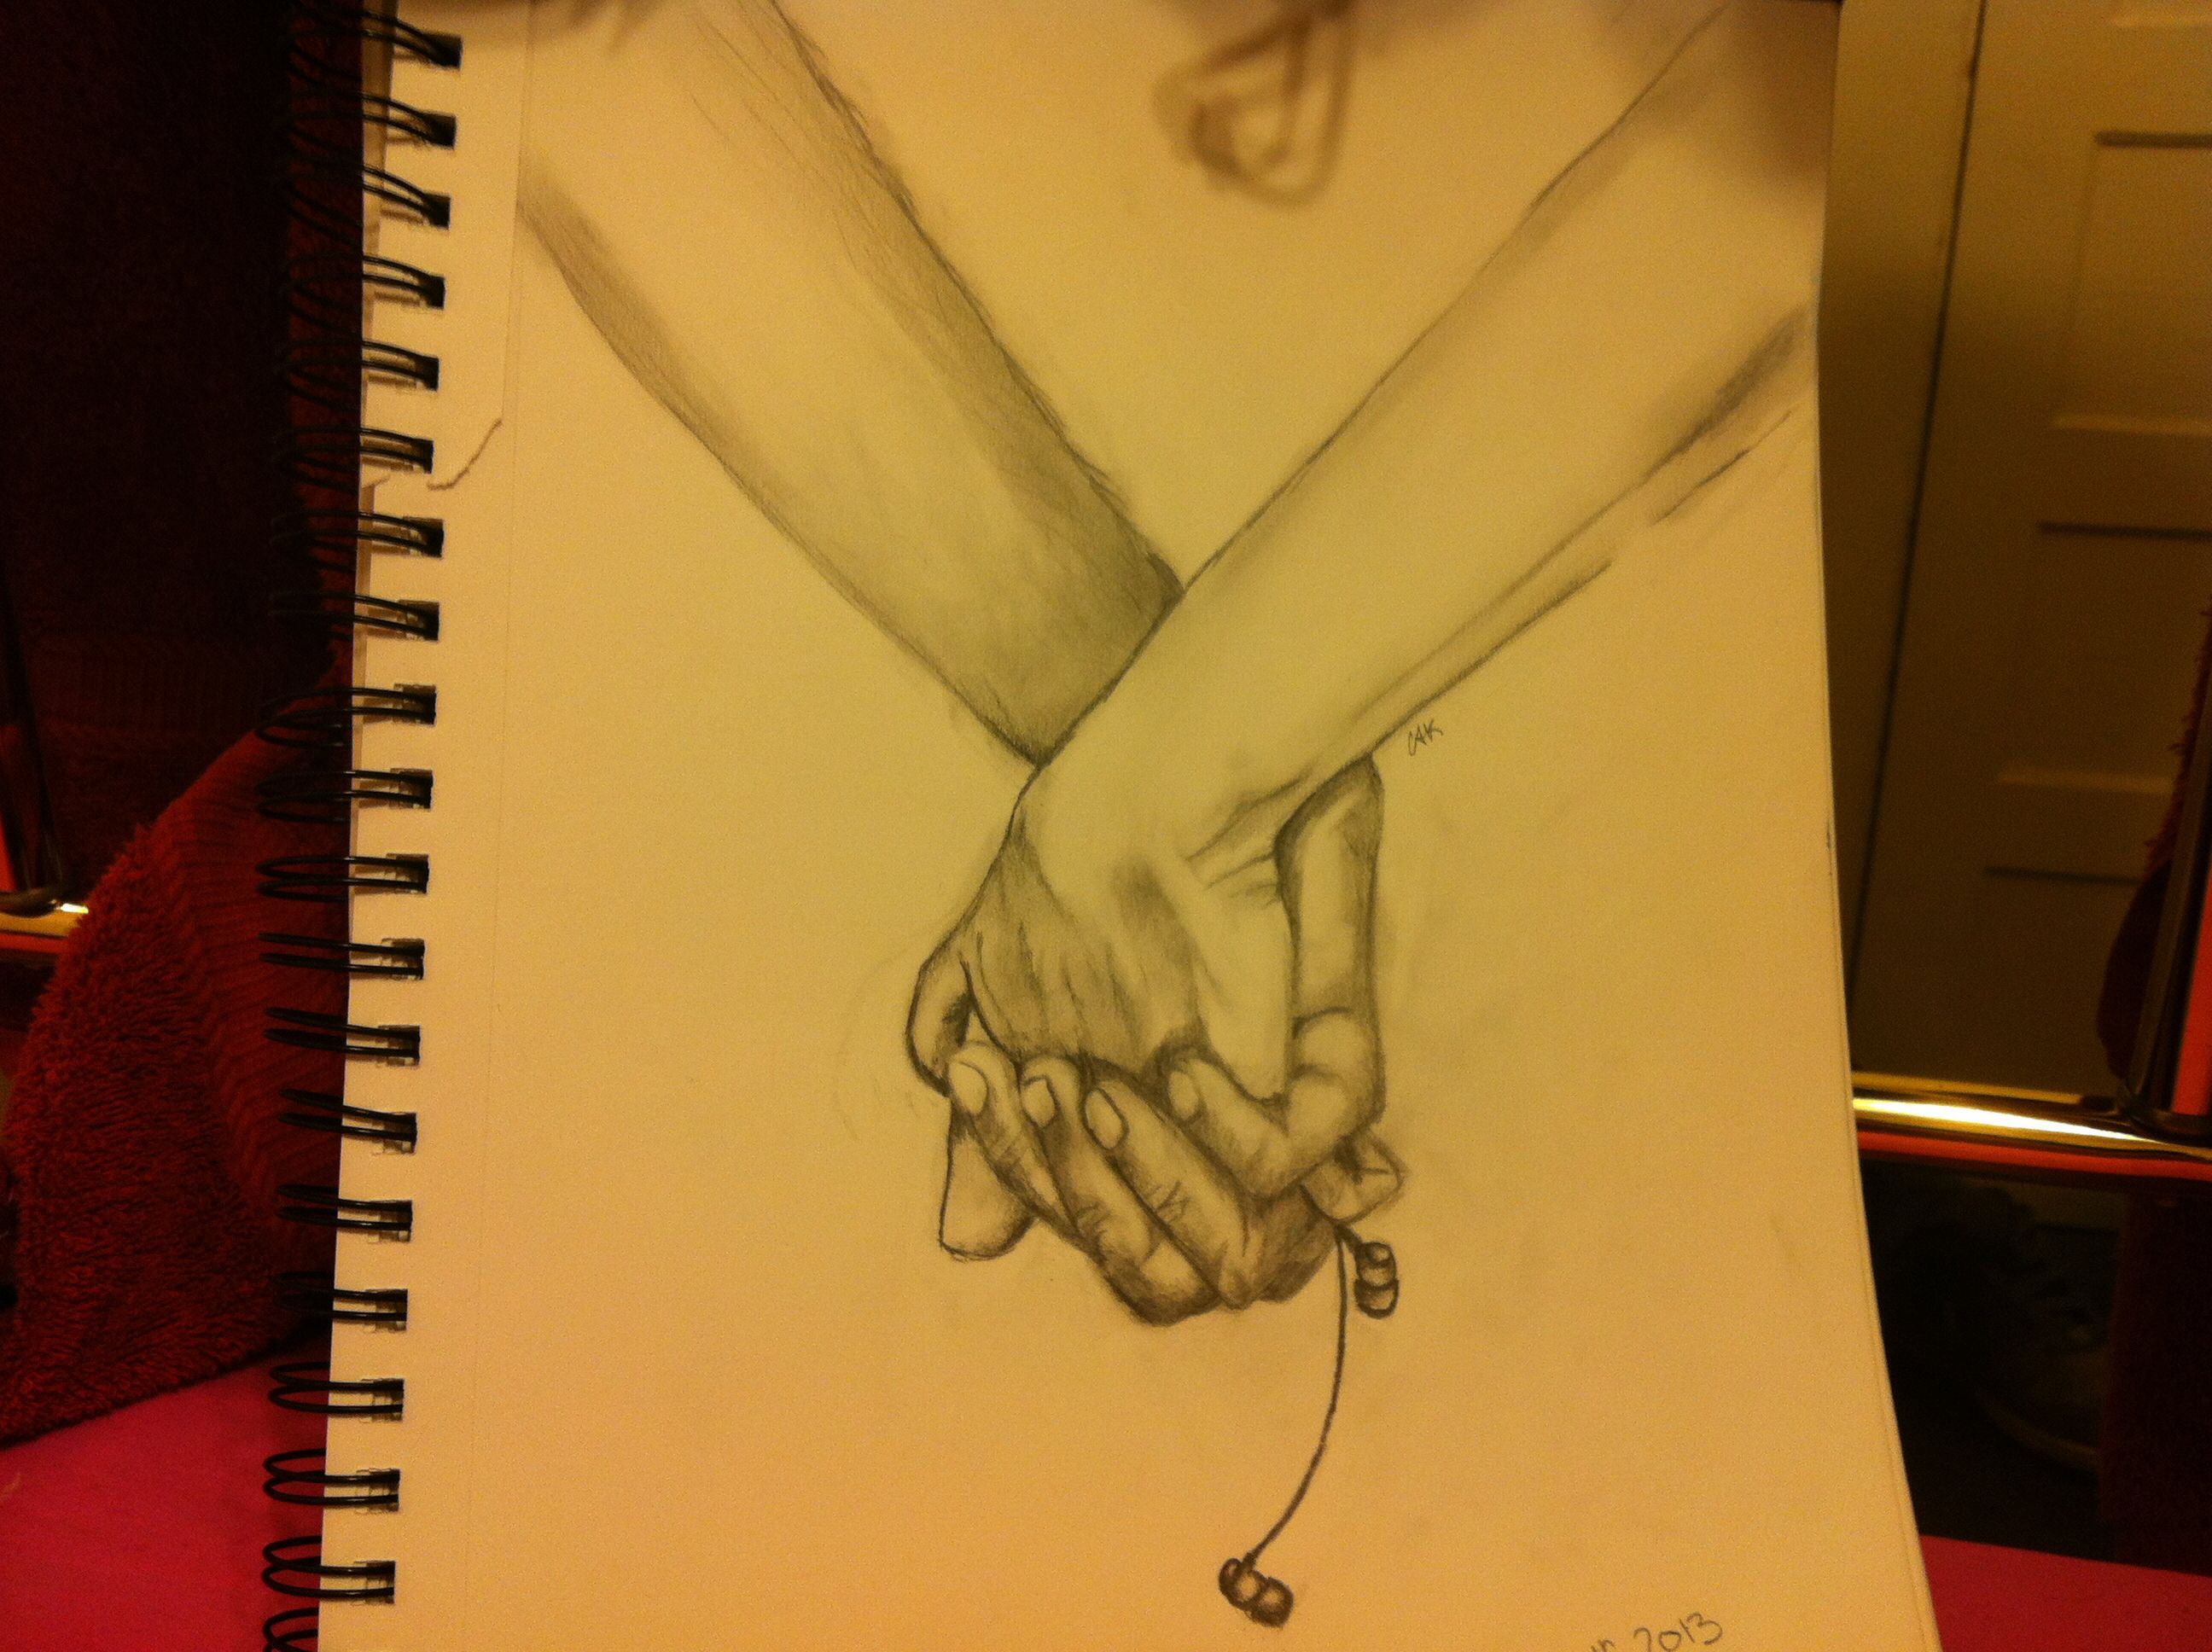 Music is love sketch holdinghands earphones cute relationship